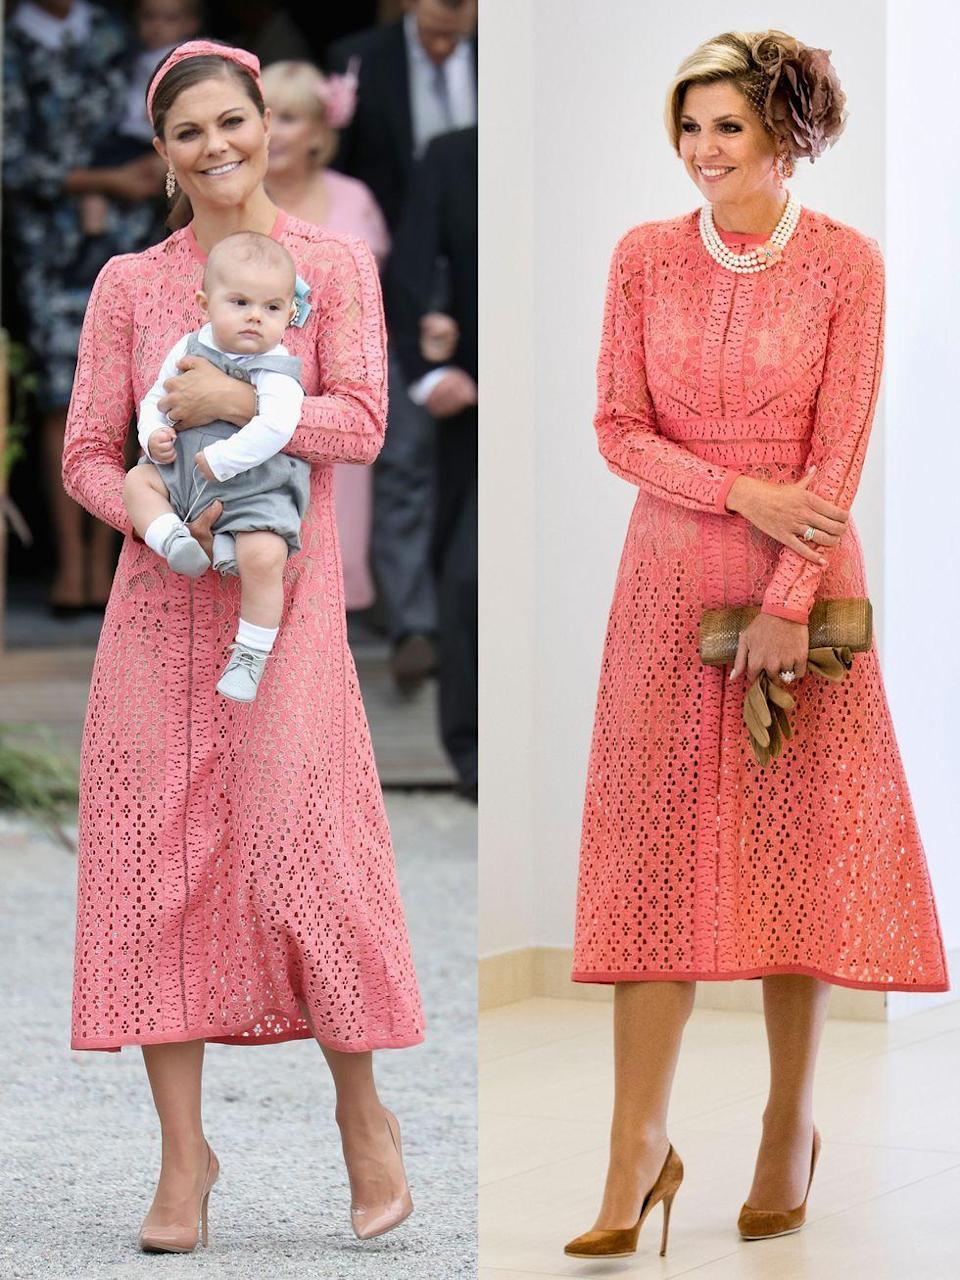 <p><strong>Left: </strong>Crown Princess Victoria of Sweden attended the christening of Prince Alexander on September 9, 2016 in Stockholm in a peachy-pink Ellie Saab dress.</p><p><strong>Right: </strong>Queen Maxima of the Netherlands visited the Champalimaud Centre in Portugal on October 11, 2017, wearing the same lace number.</p>